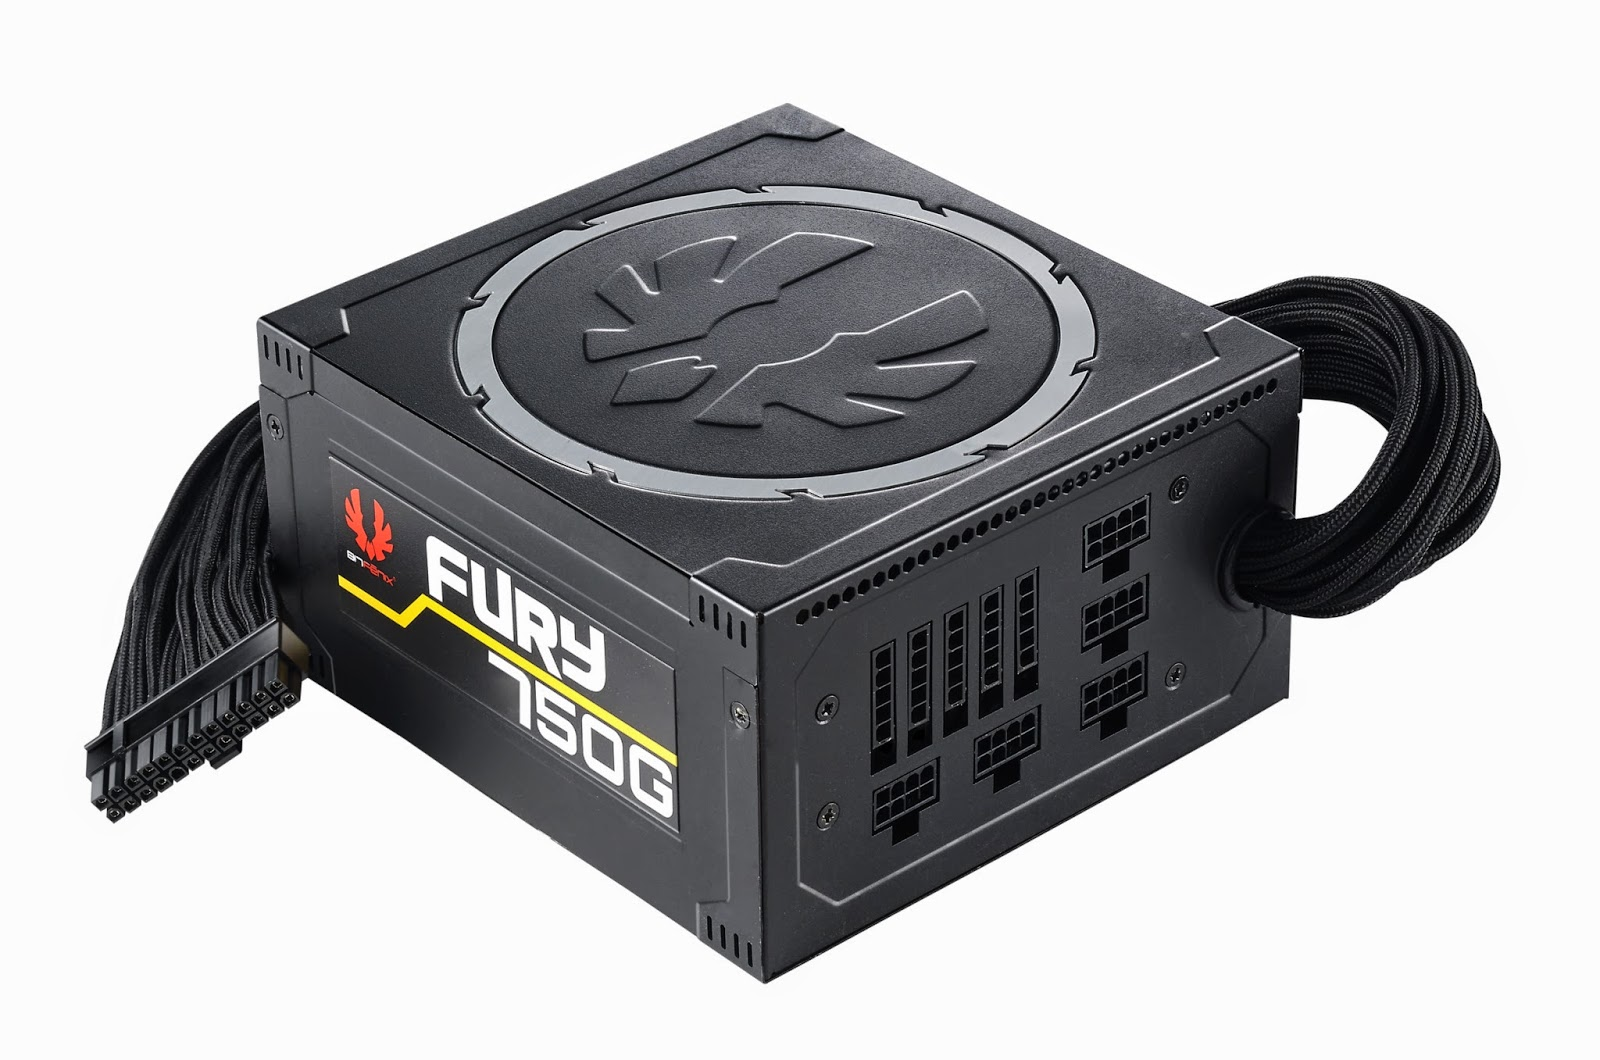 Introducing BitFenix Fury PSU Series 12